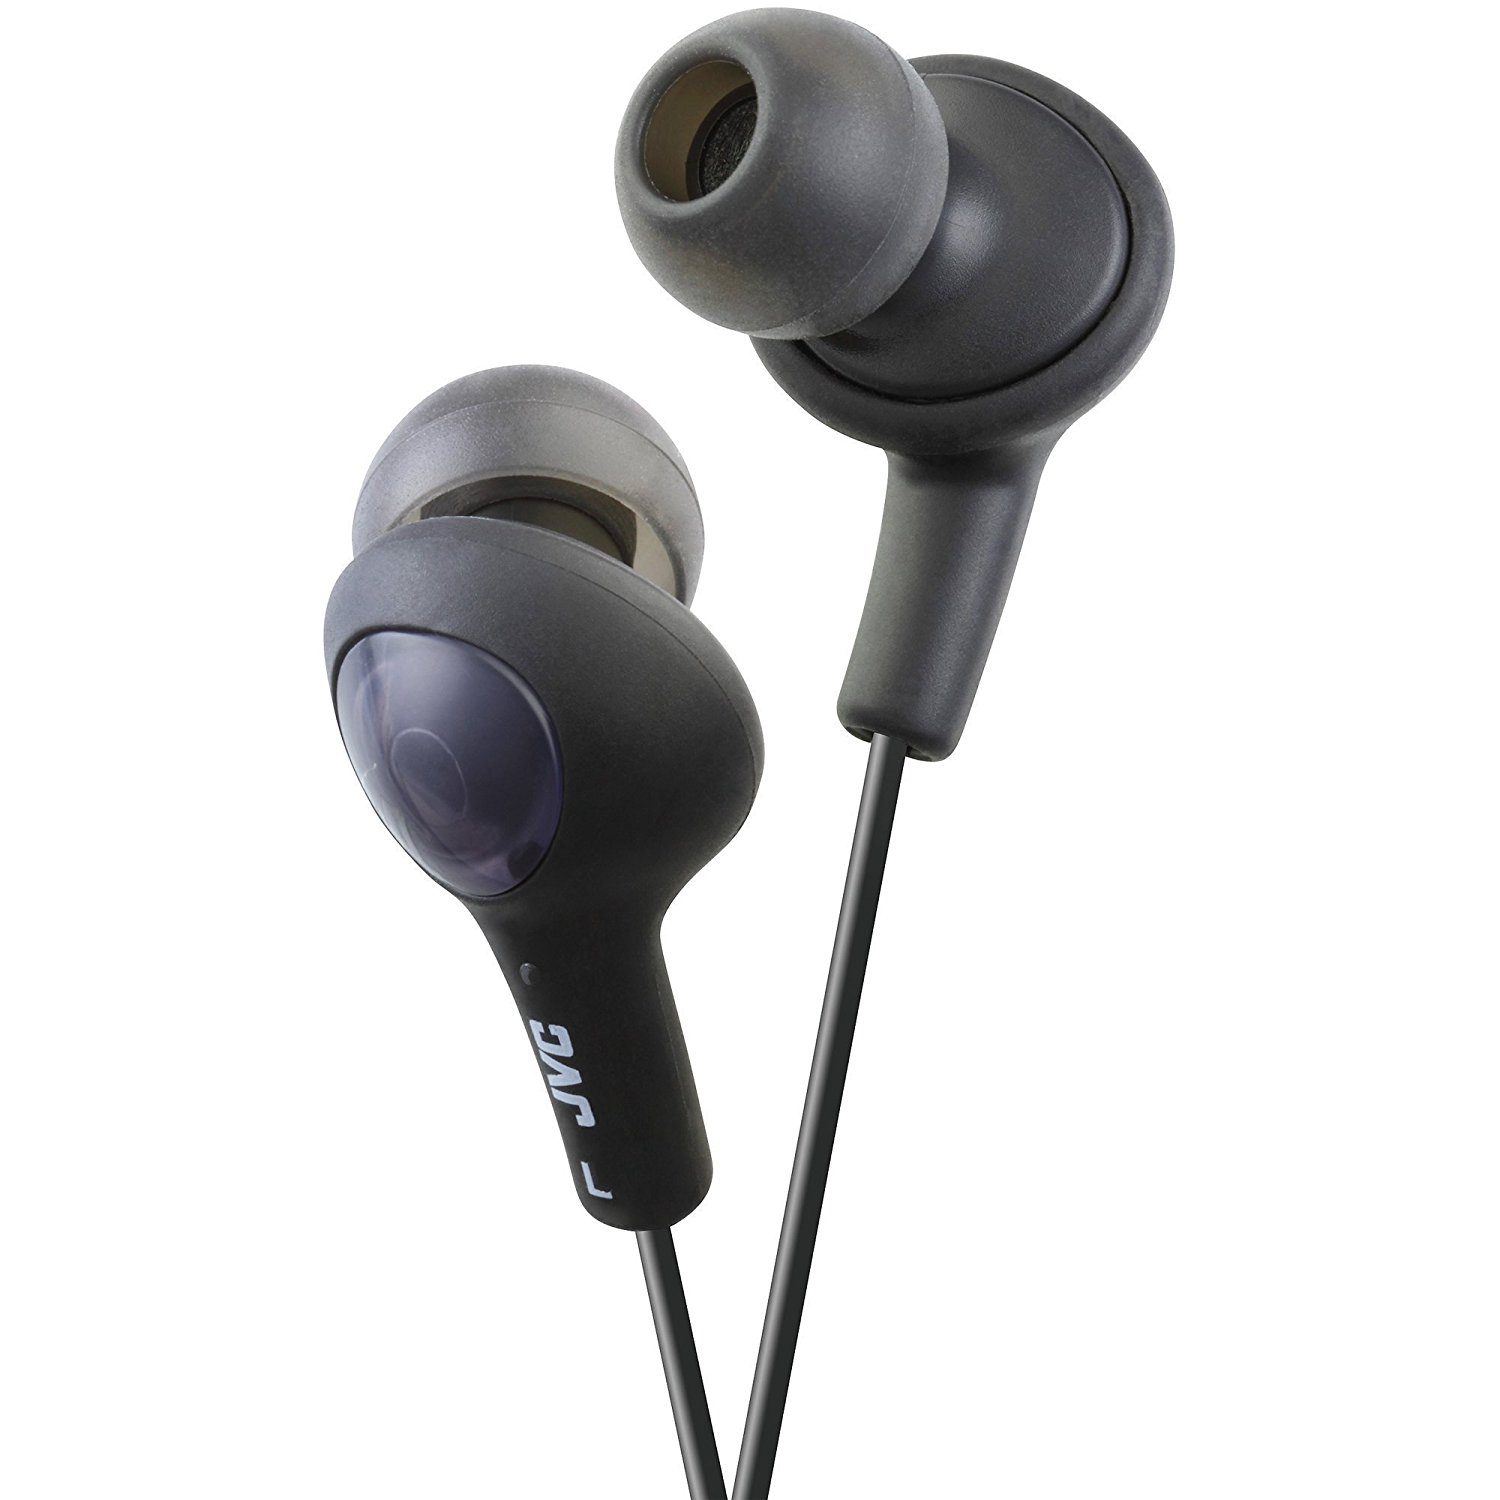 JVC Gumy Plus In-Ear Earbud Headphones with Microphone, Black, HA-FX65M-B (Non-Retail Packaging)